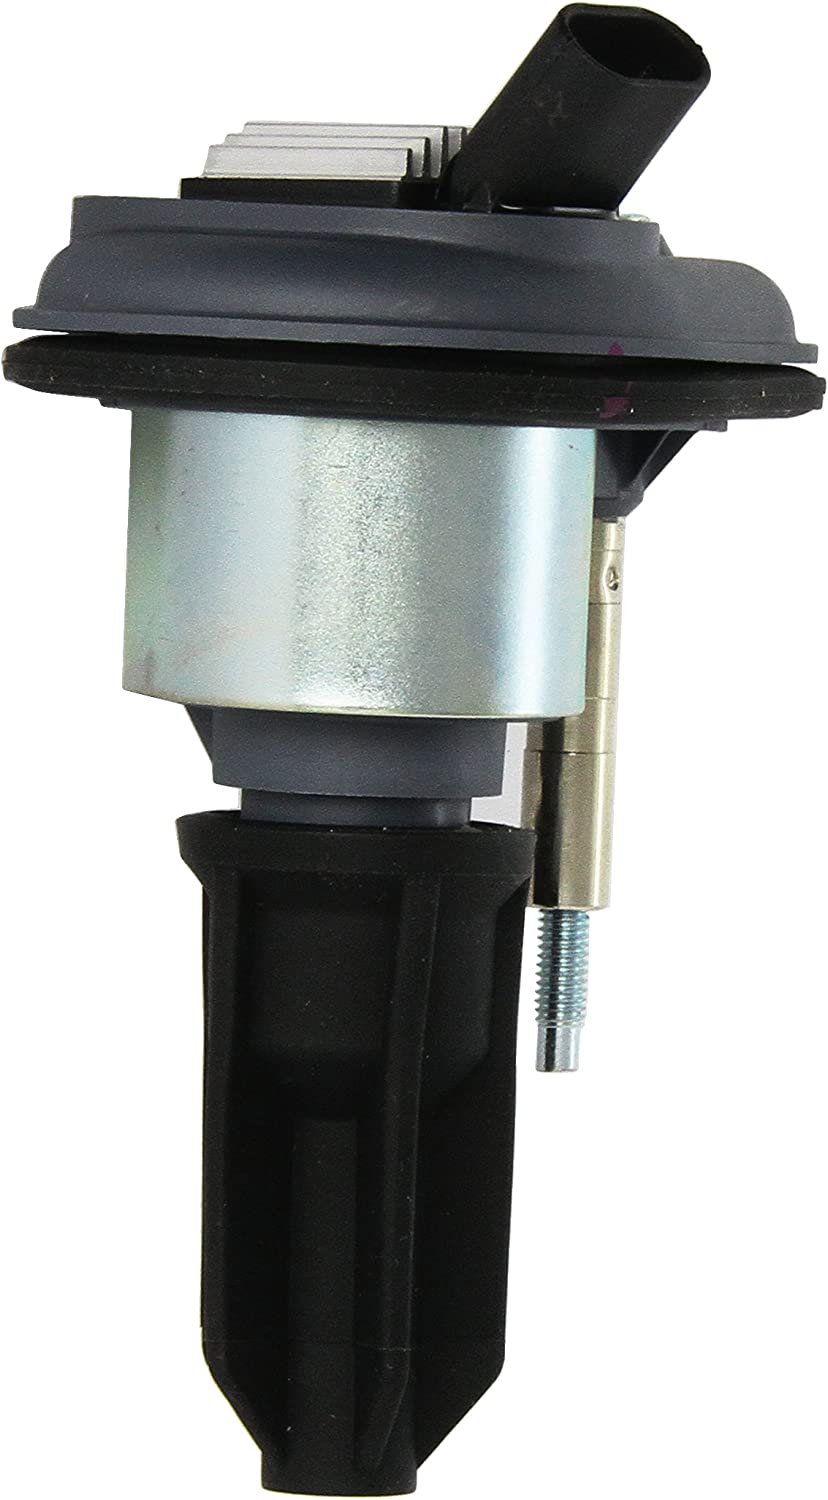 Standard Motor Products Max 40% OFF Ignition Overseas parallel import regular item UF-303T Coil